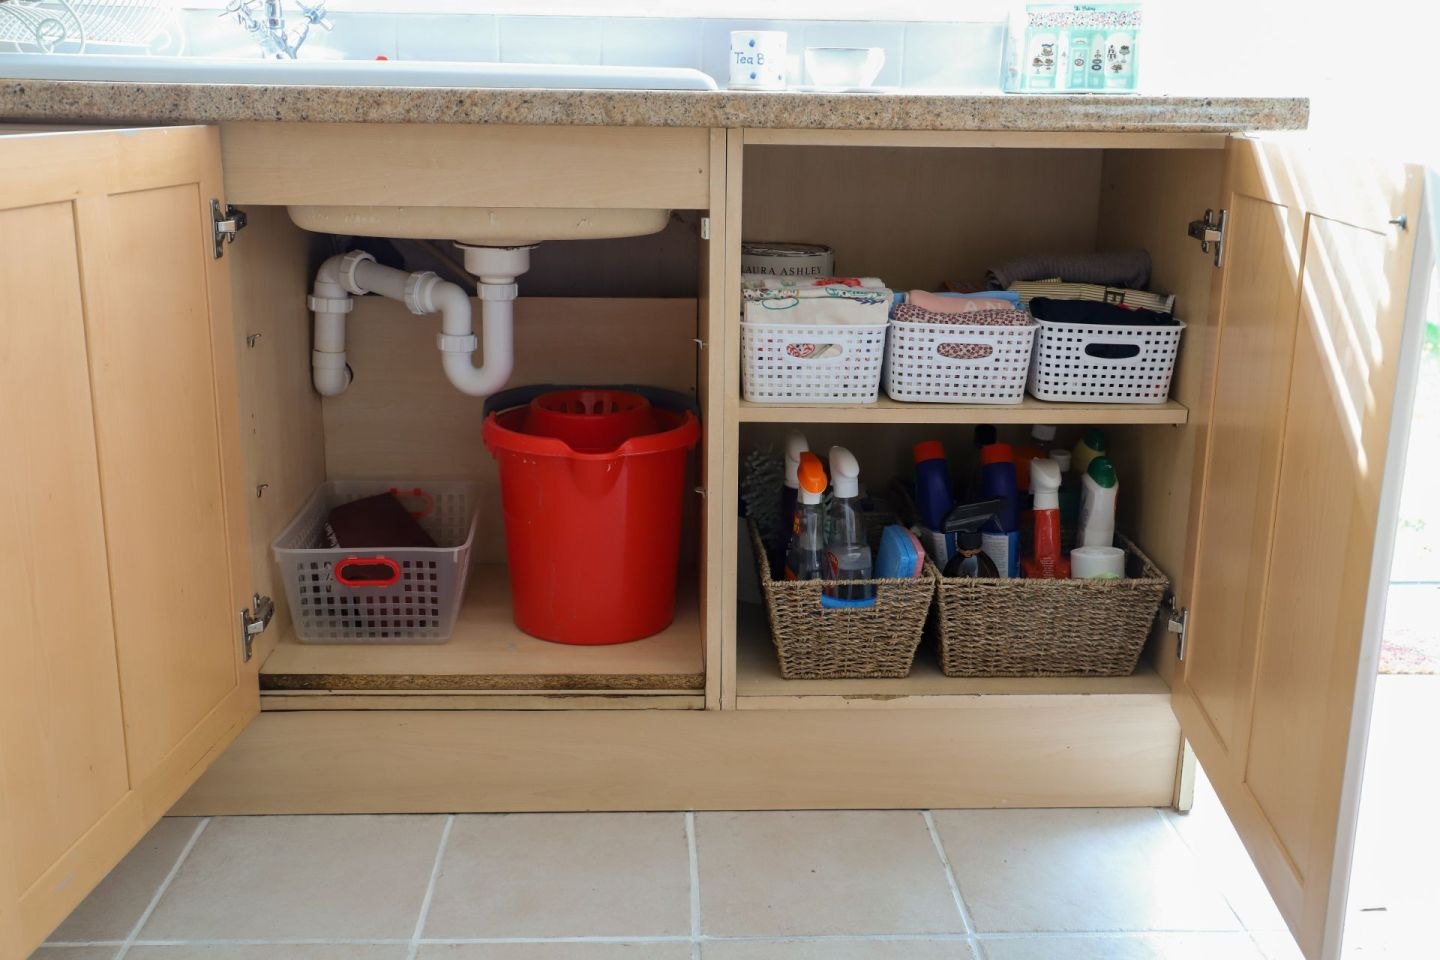 Kitchen storage containers and baskets